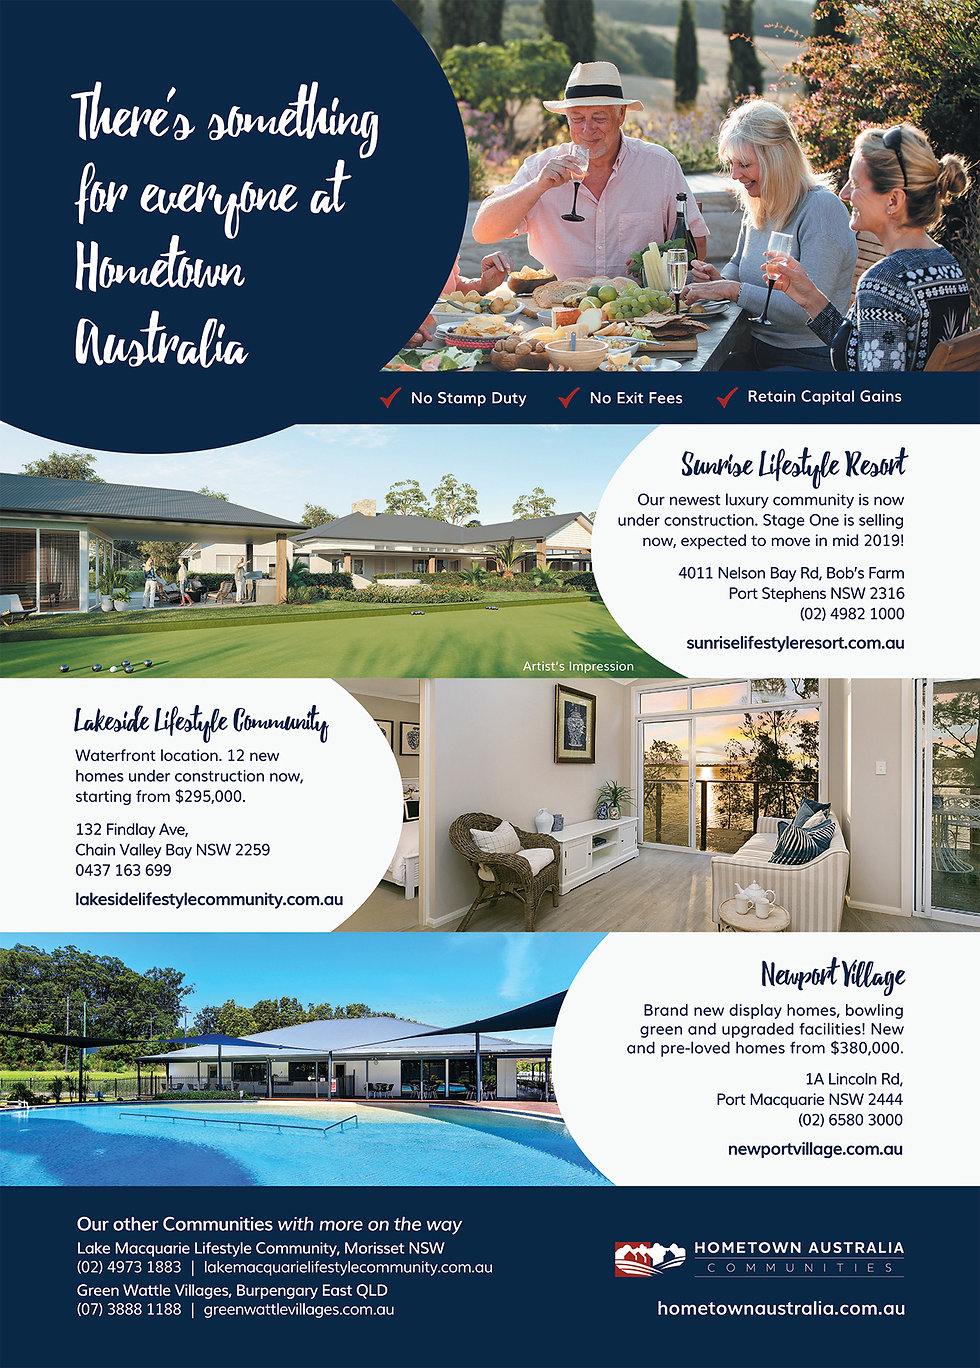 hometown australia - Retirement Living Australia